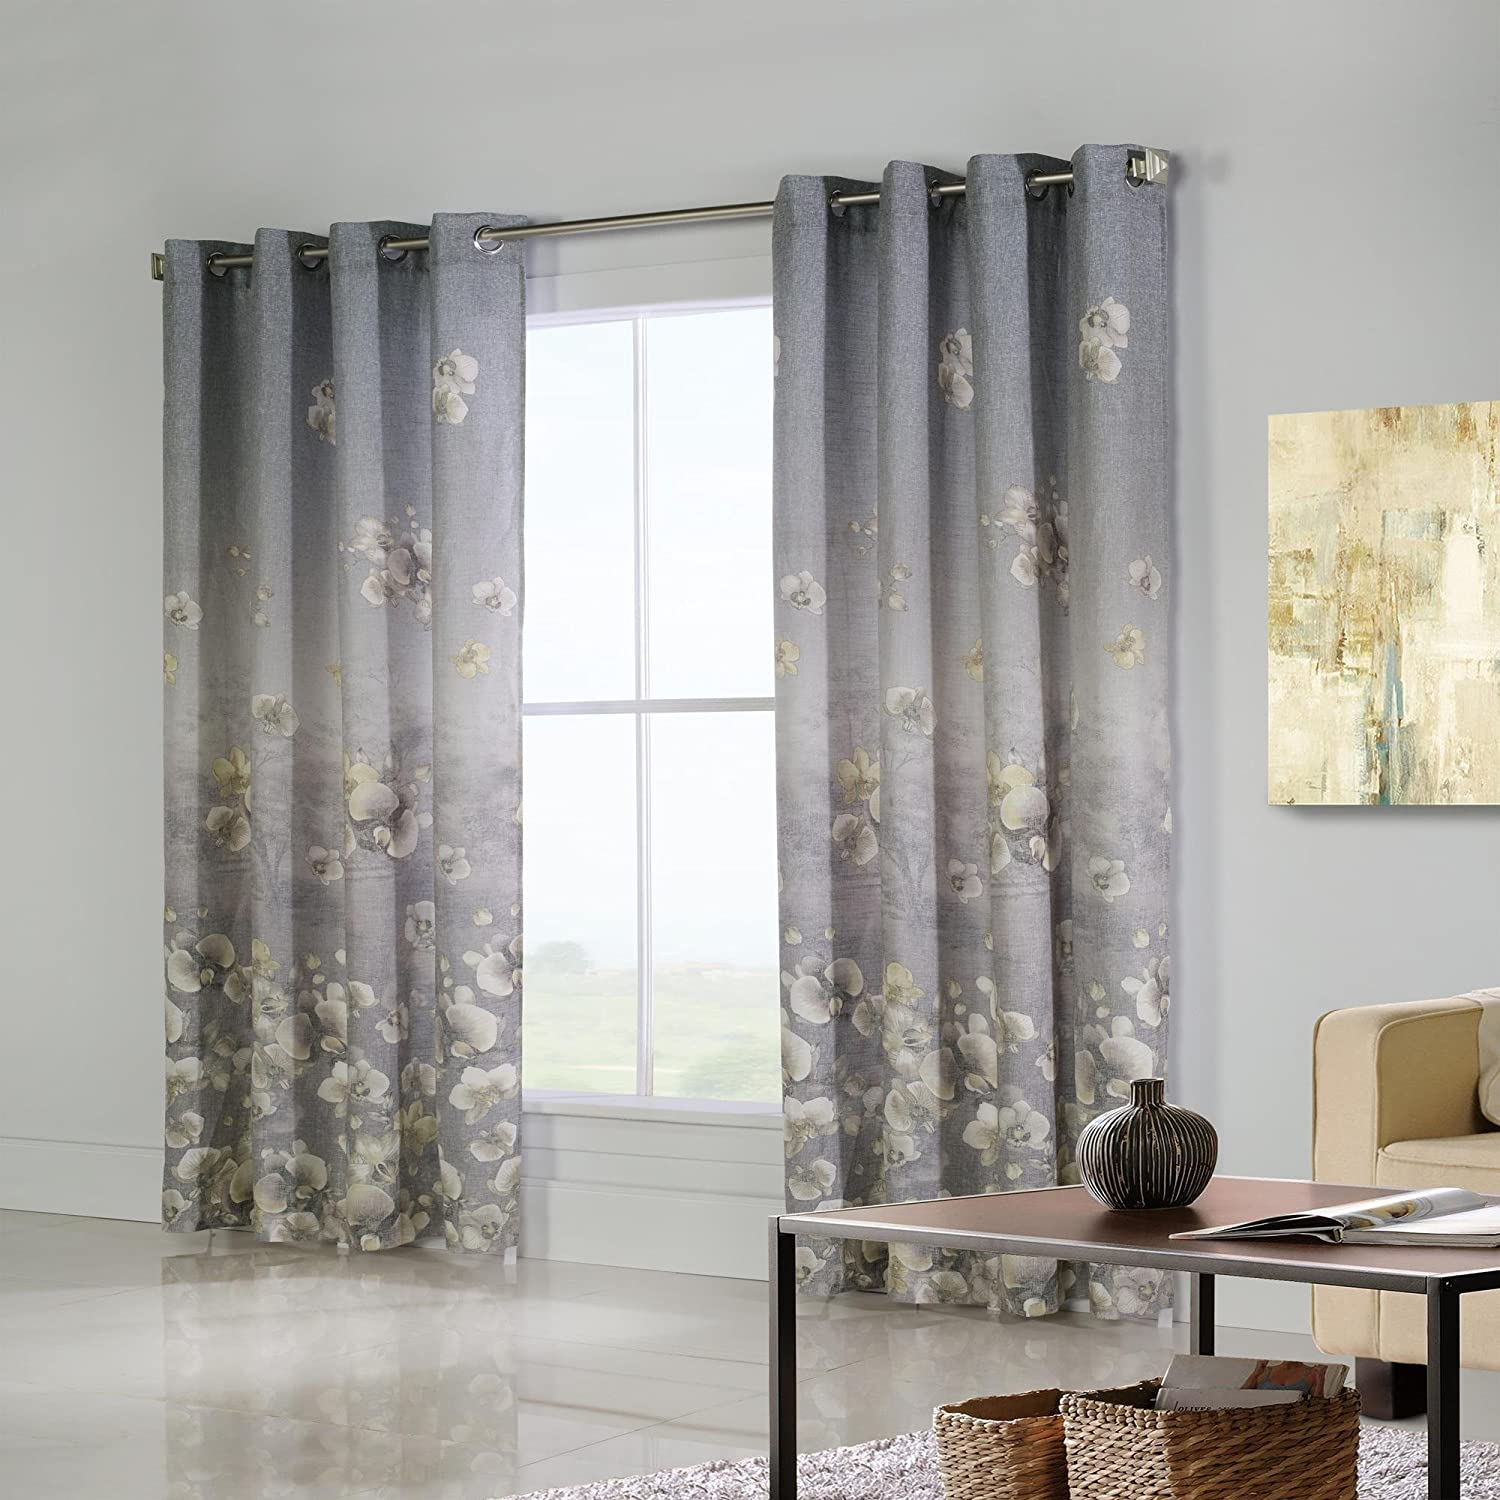 Commonwealth Home Fashions 71326-109-84-201 Chamberlain printed panel, 5463 inches